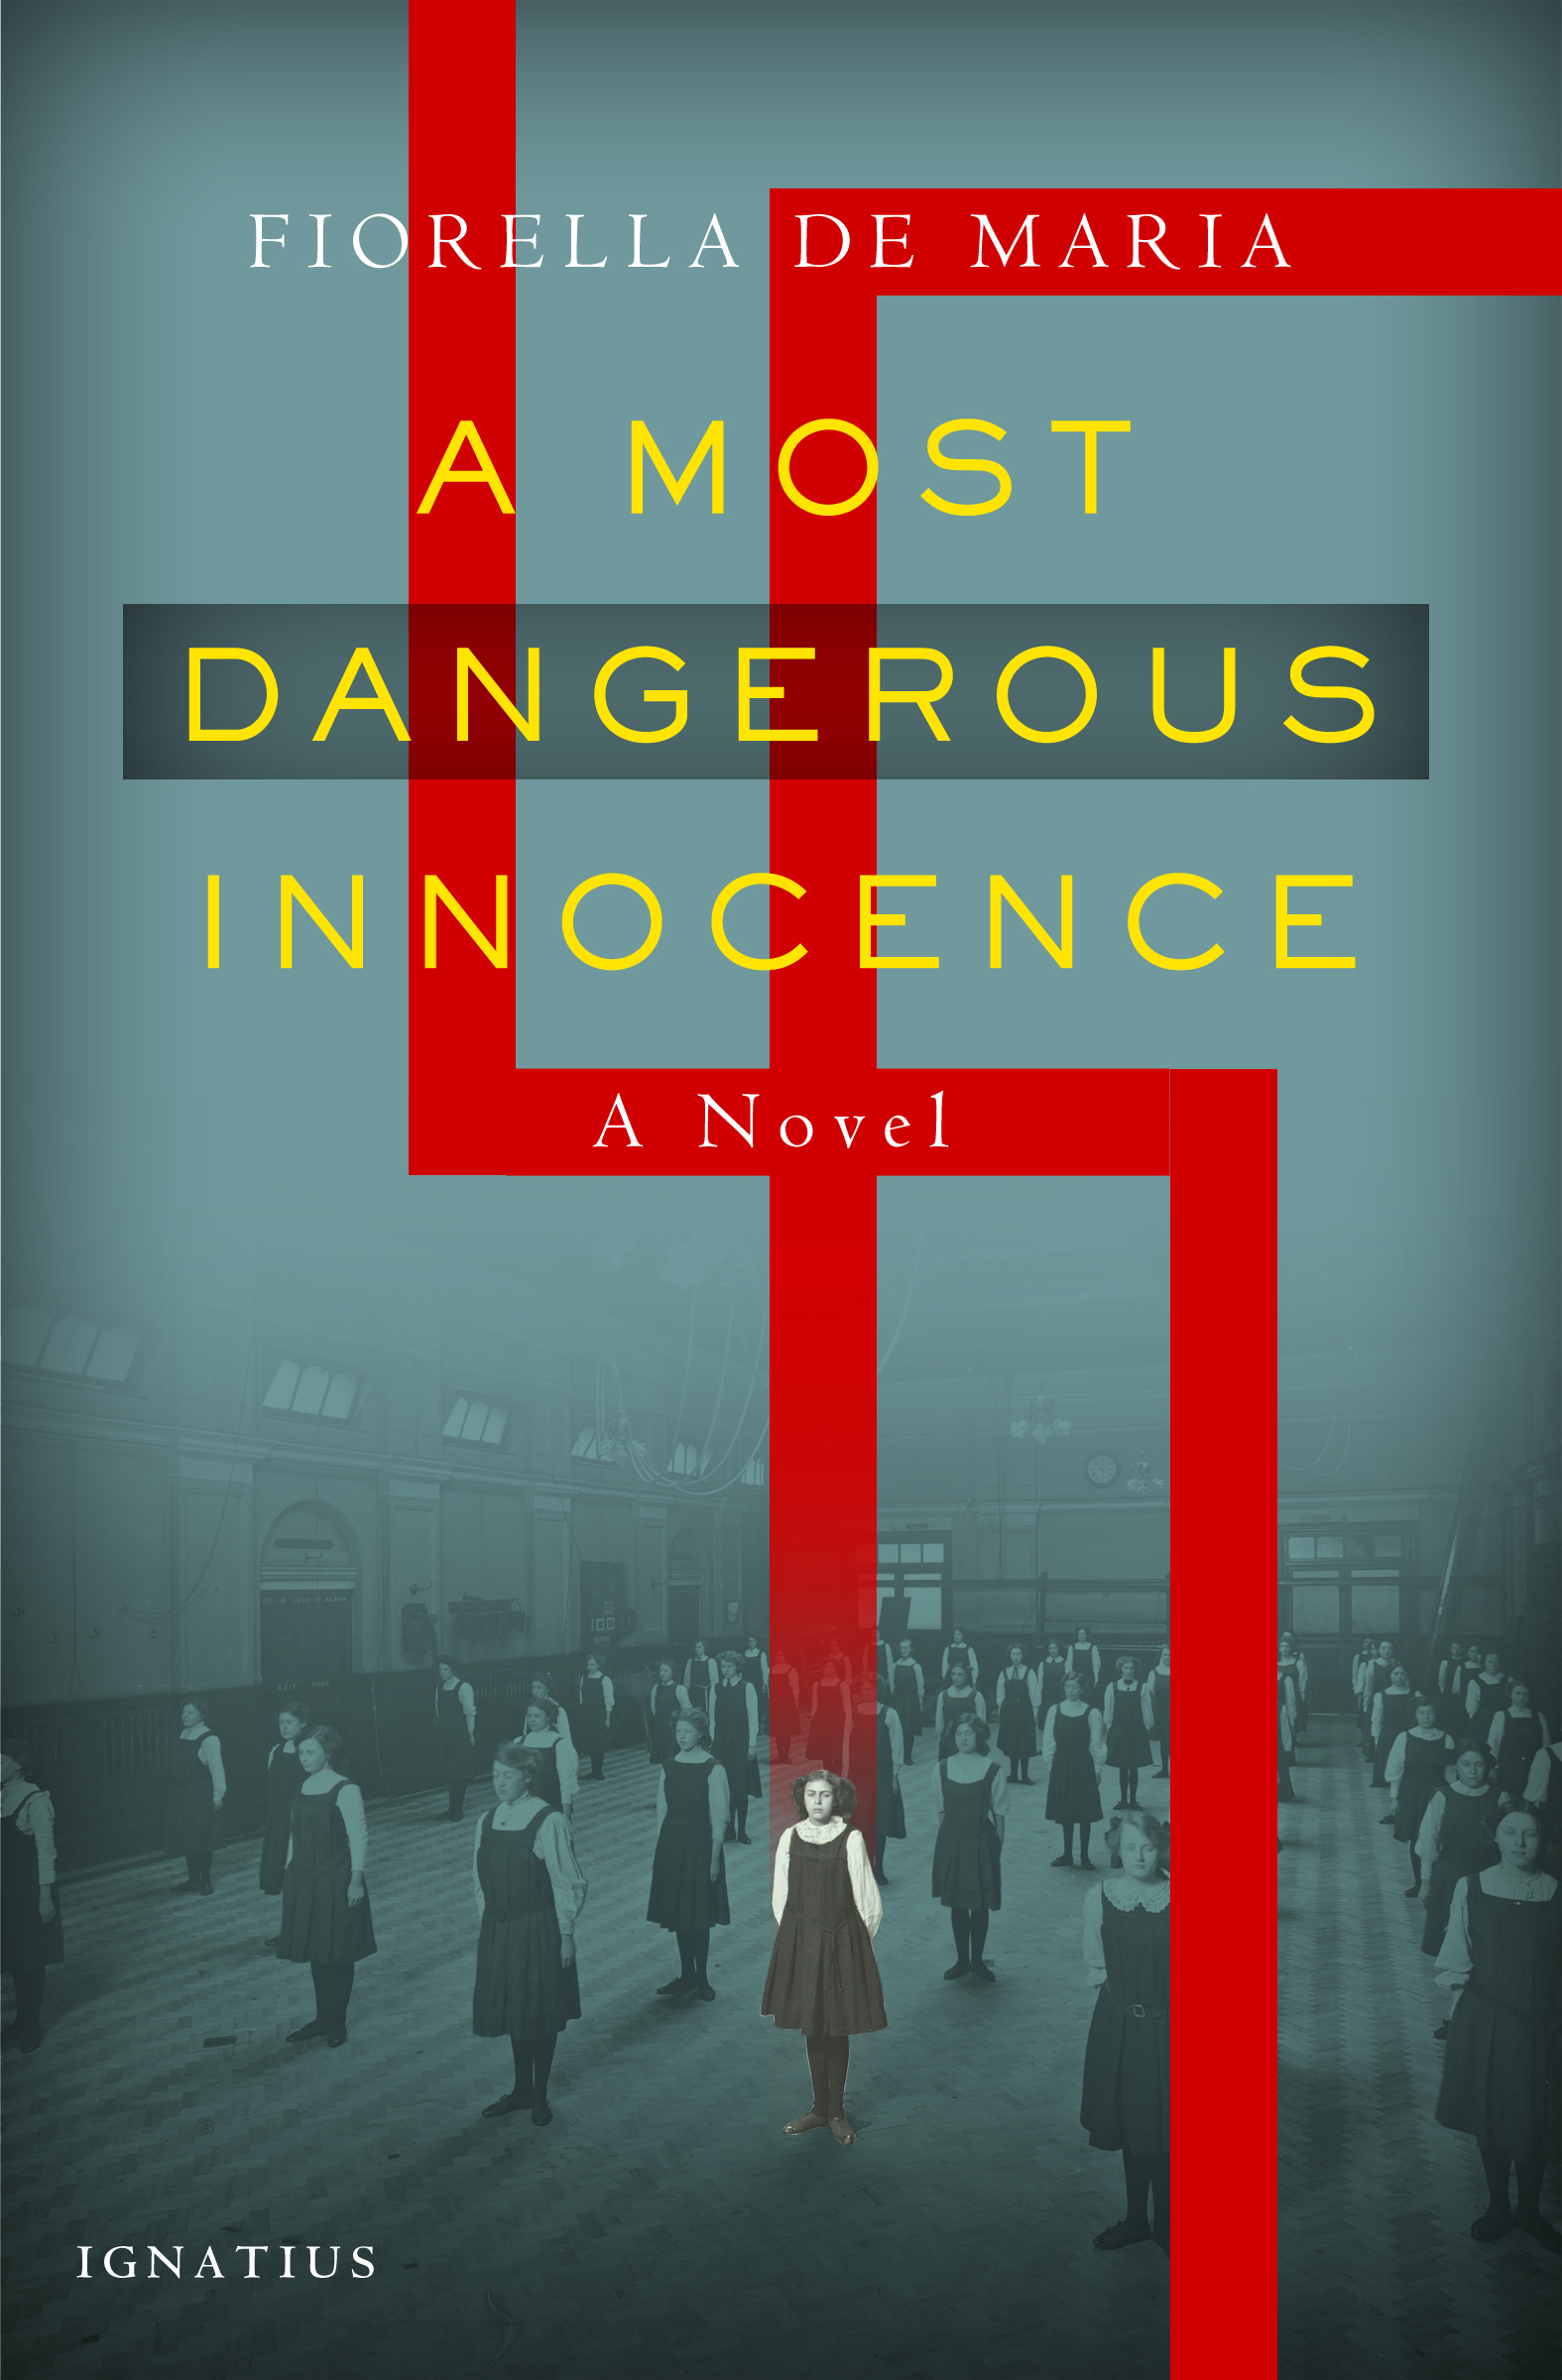 A Most Dangerous Innocence